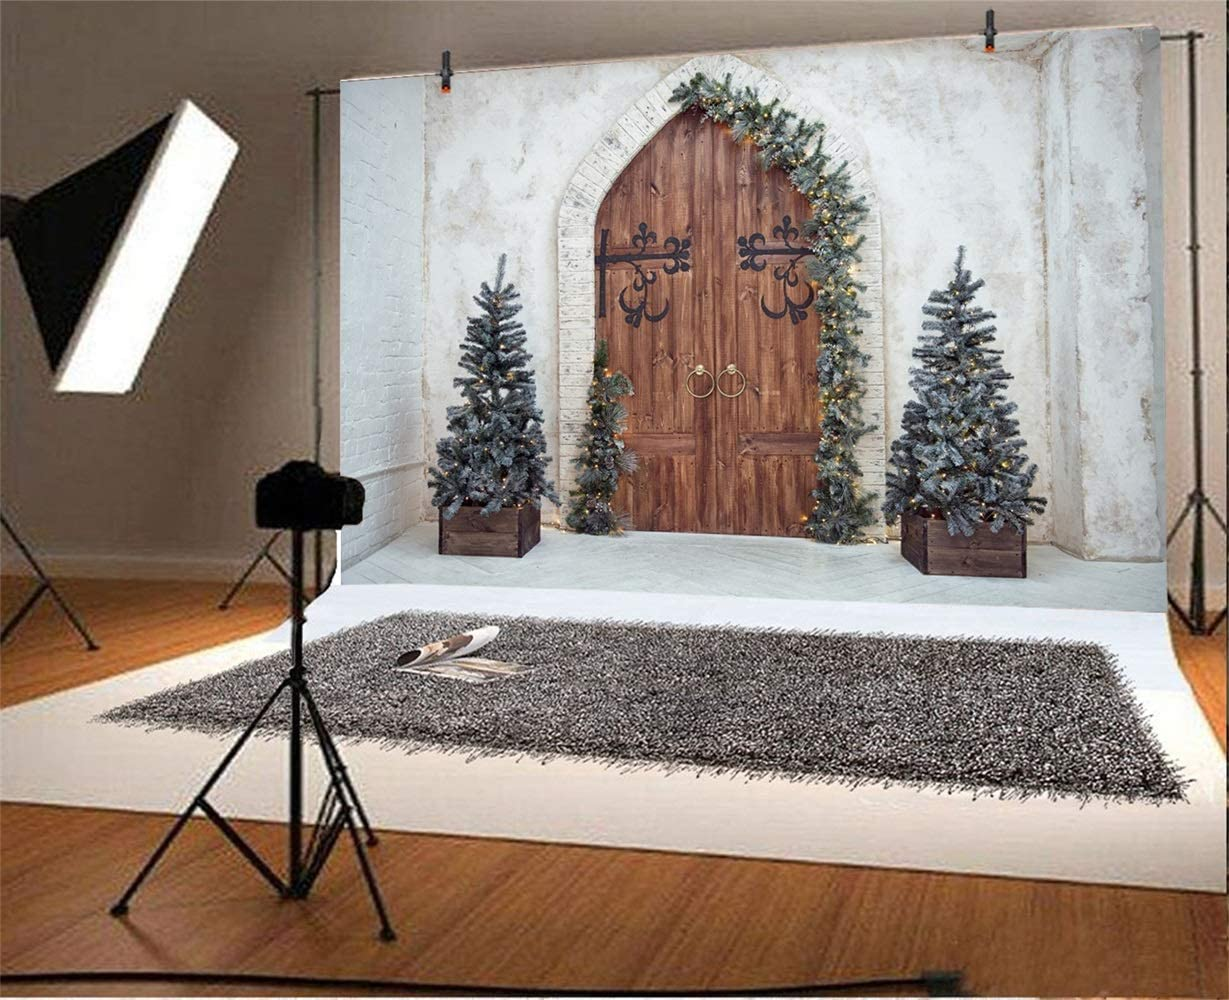 Christmas Theme Backdrop Vinyl 10x7ft Vintage Arch Wooden Door Front Xmas Trees Plain Lime Wall Photography Background Xmas Party Banner Child Kids Baby Portrait Shoot Wallpaper